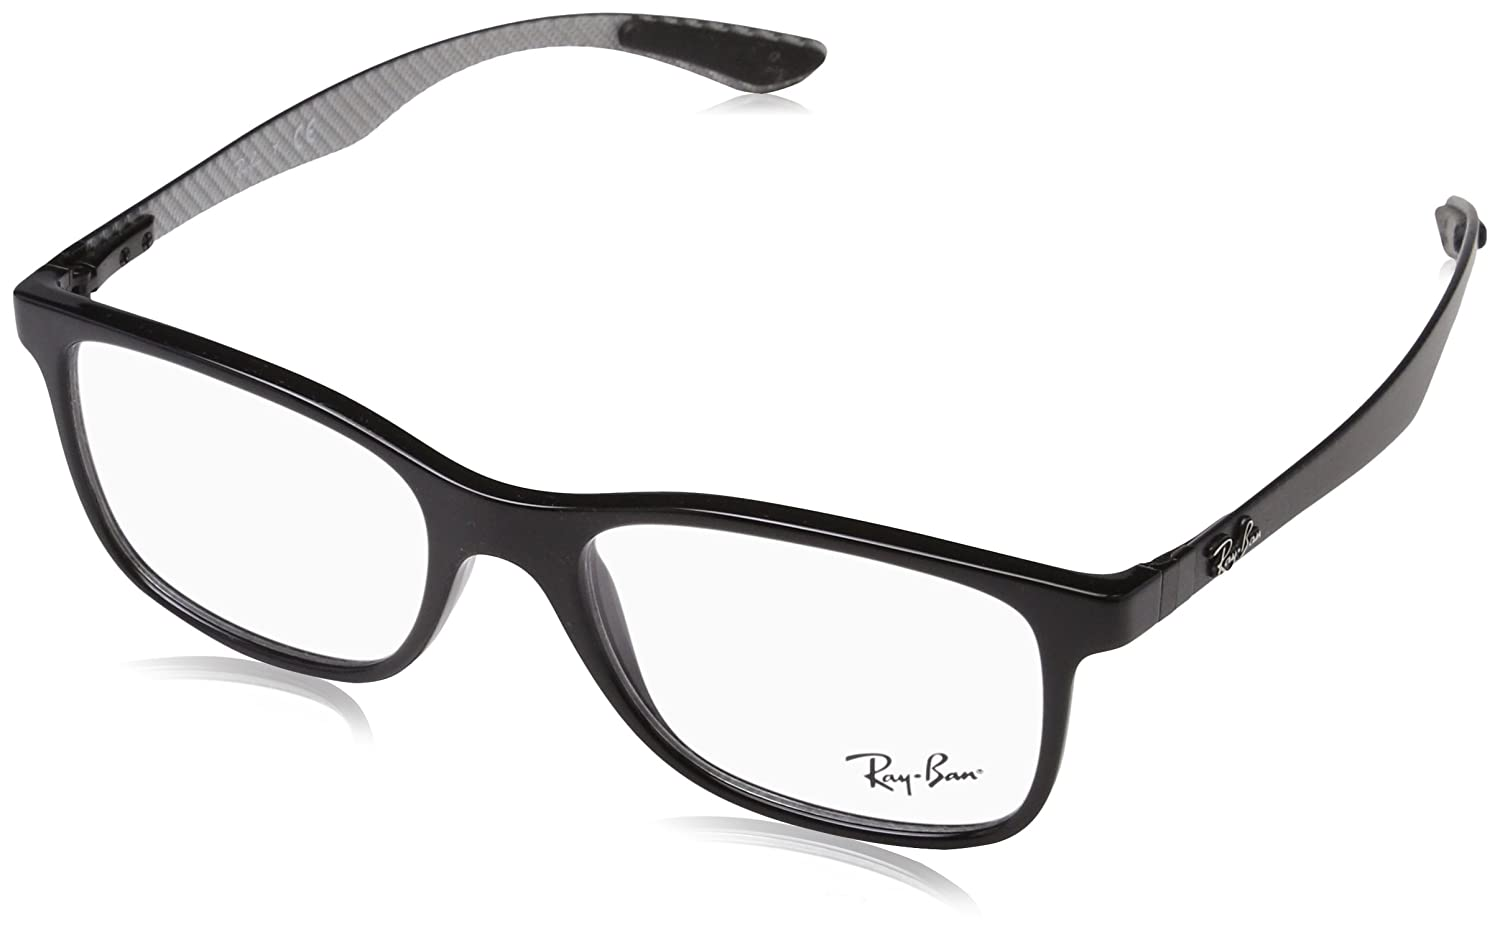 39d31e625c Amazon.com  Ray-Ban Men s 0rx8903 No Polarization Square Prescription  Eyewear Frame